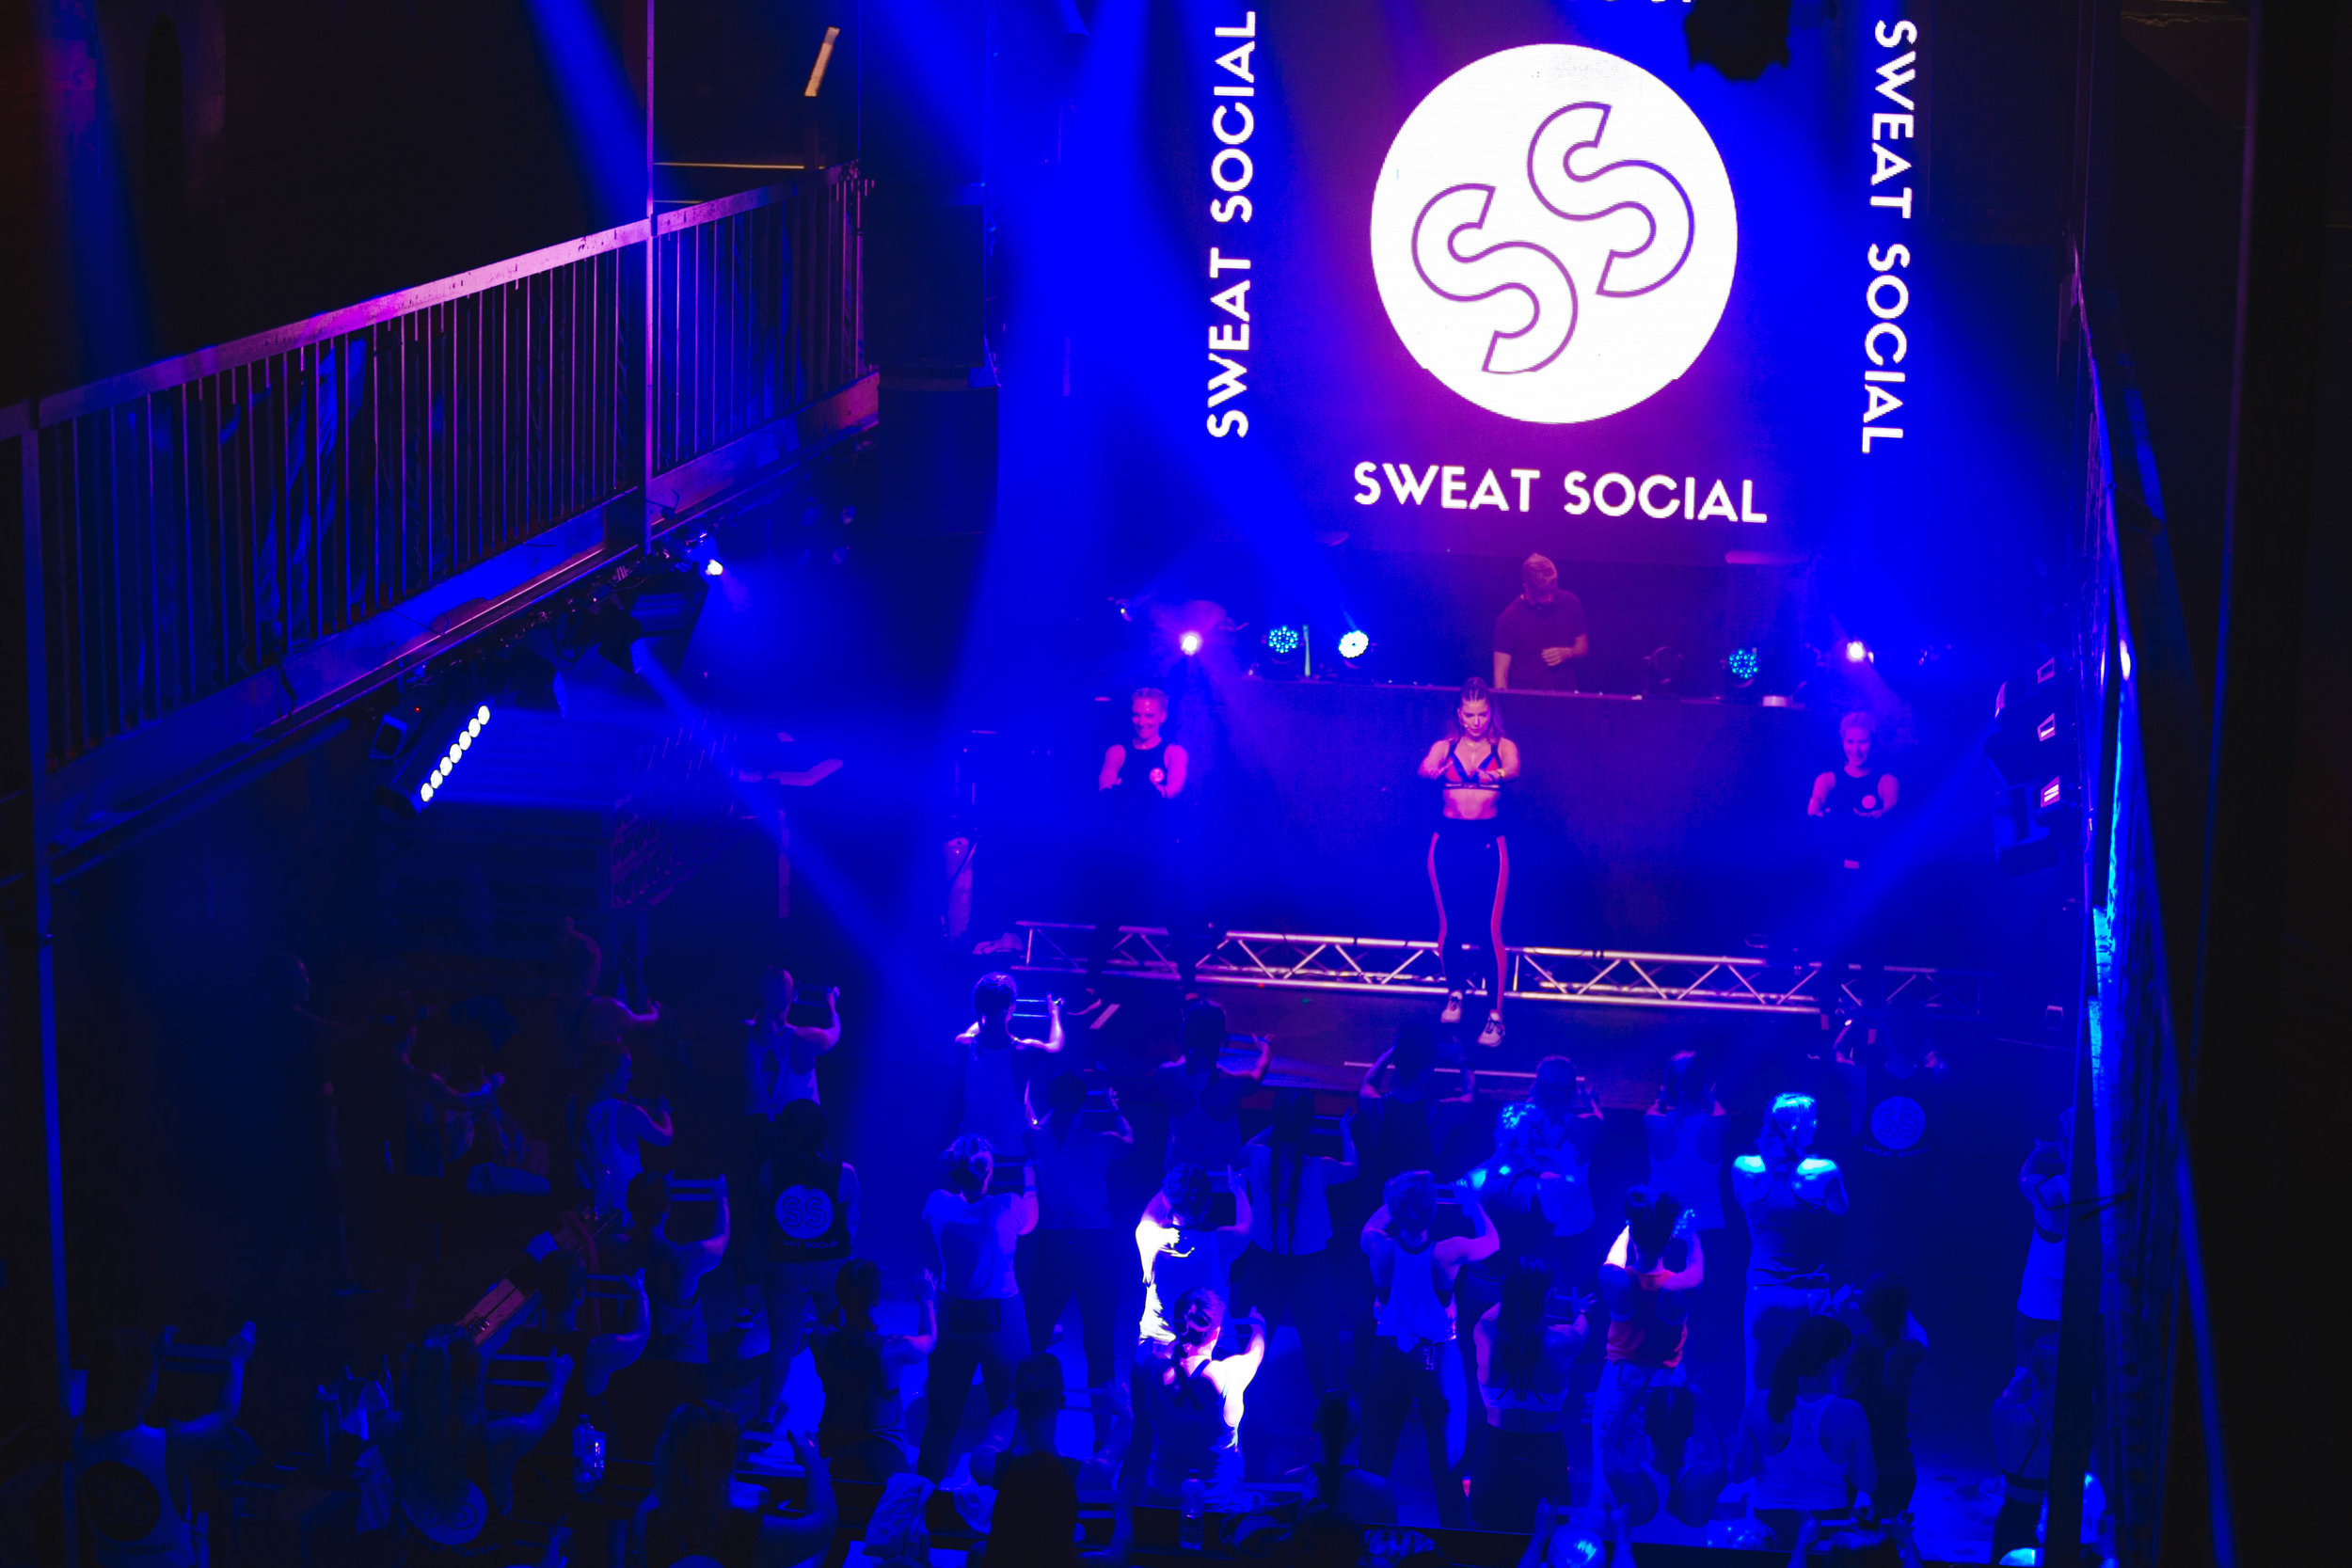 Sweat at the Met - Sunday 25 March at The Met Nightclub in Fortitude ValleyBooty workout with New York based fitness influencer Sweat with Bec